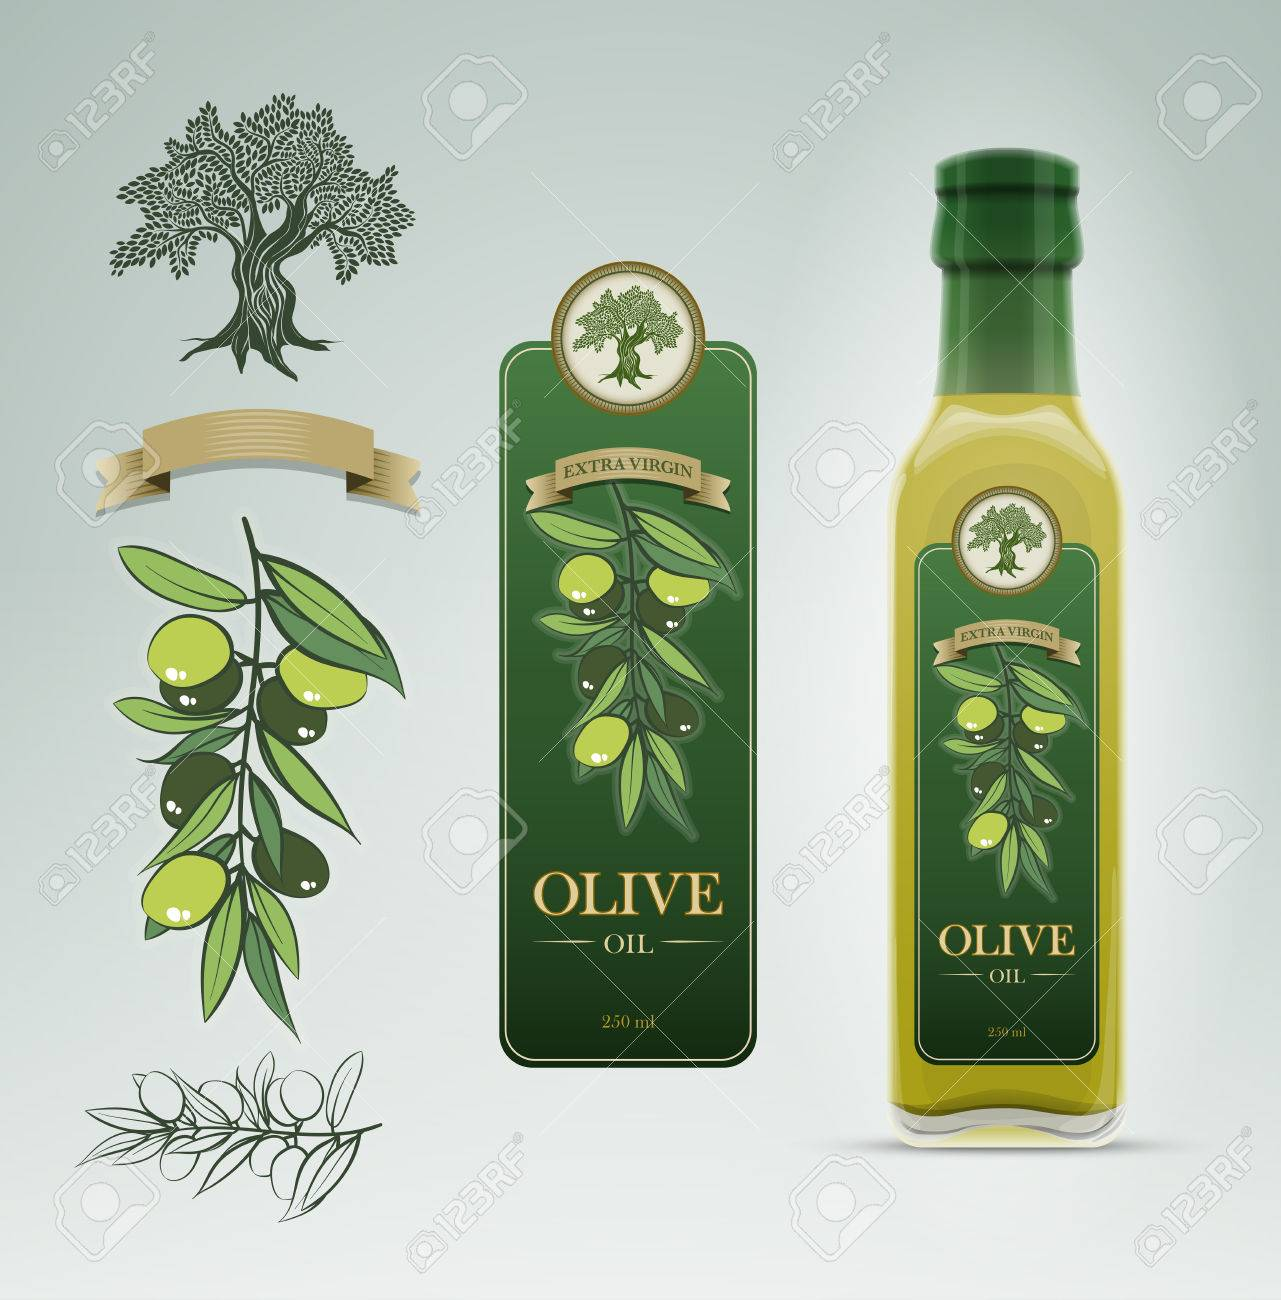 Glass Oil Olive Bottle And Label Design Template. Royalty Free ...